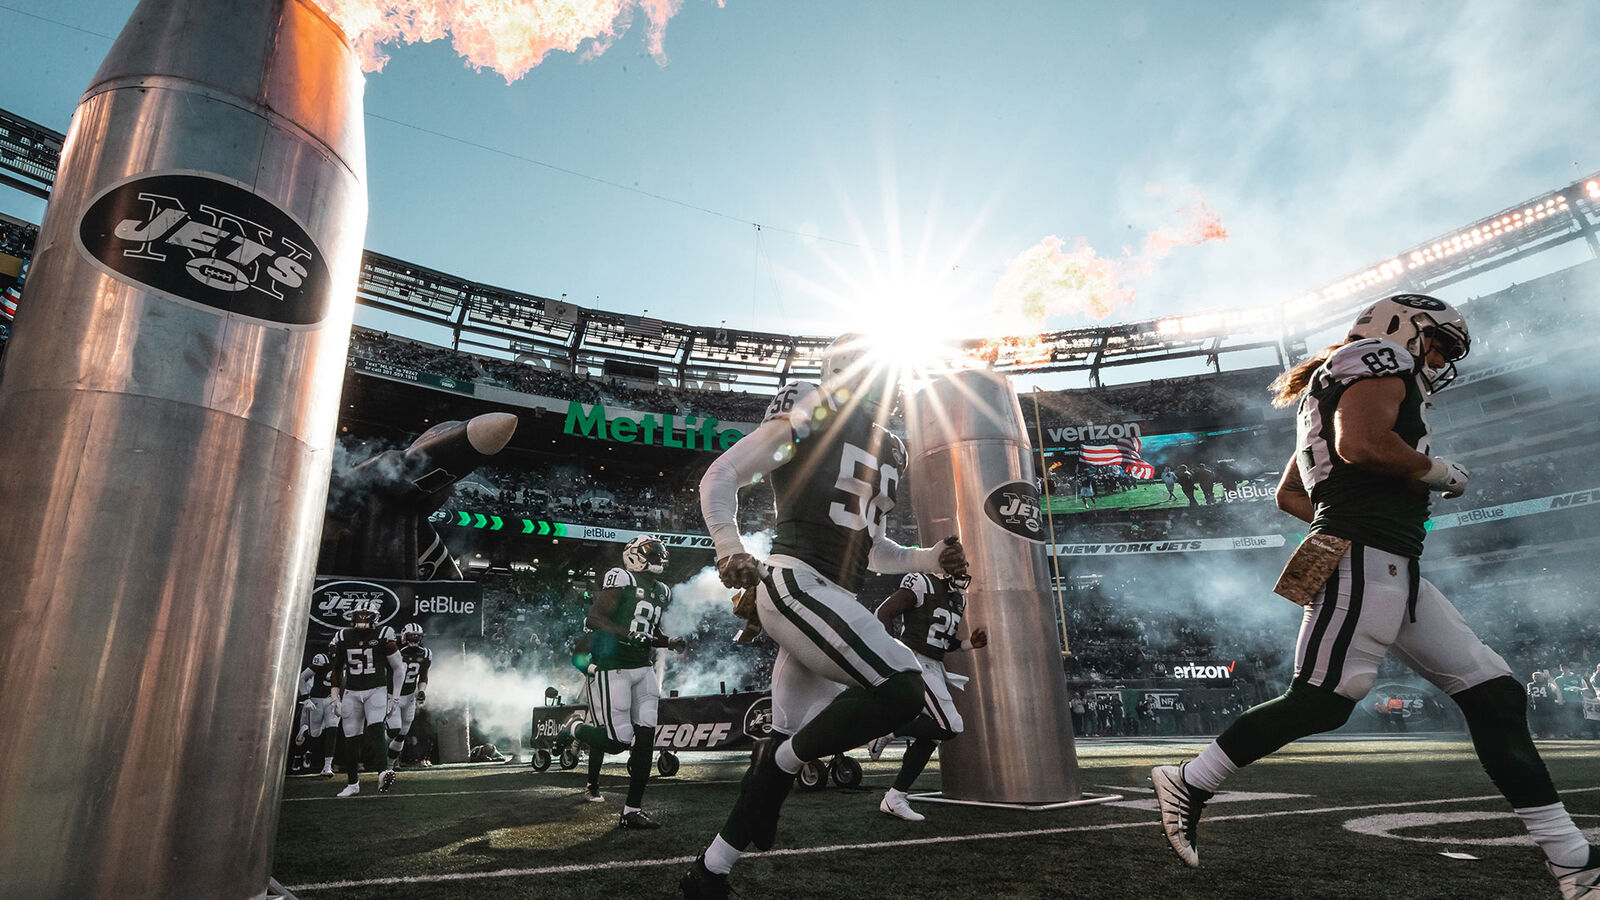 6f4ca0e0a6b Vikings vs. Jets NFL tickets at StubHub!